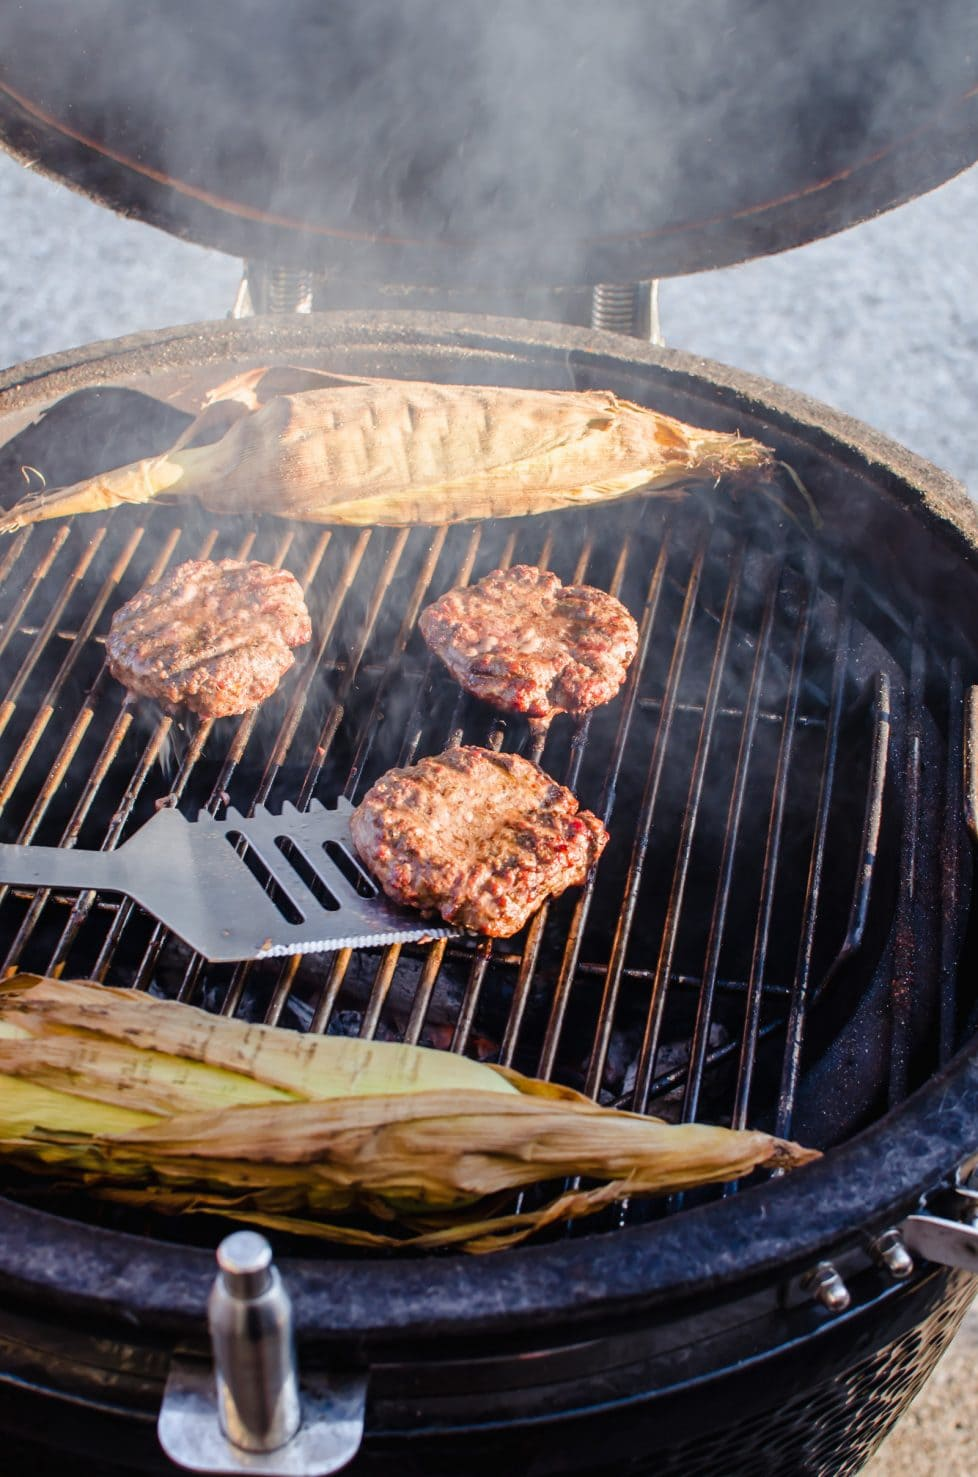 Burger patties being flipped on a grill with two ears of corn in the shuck.